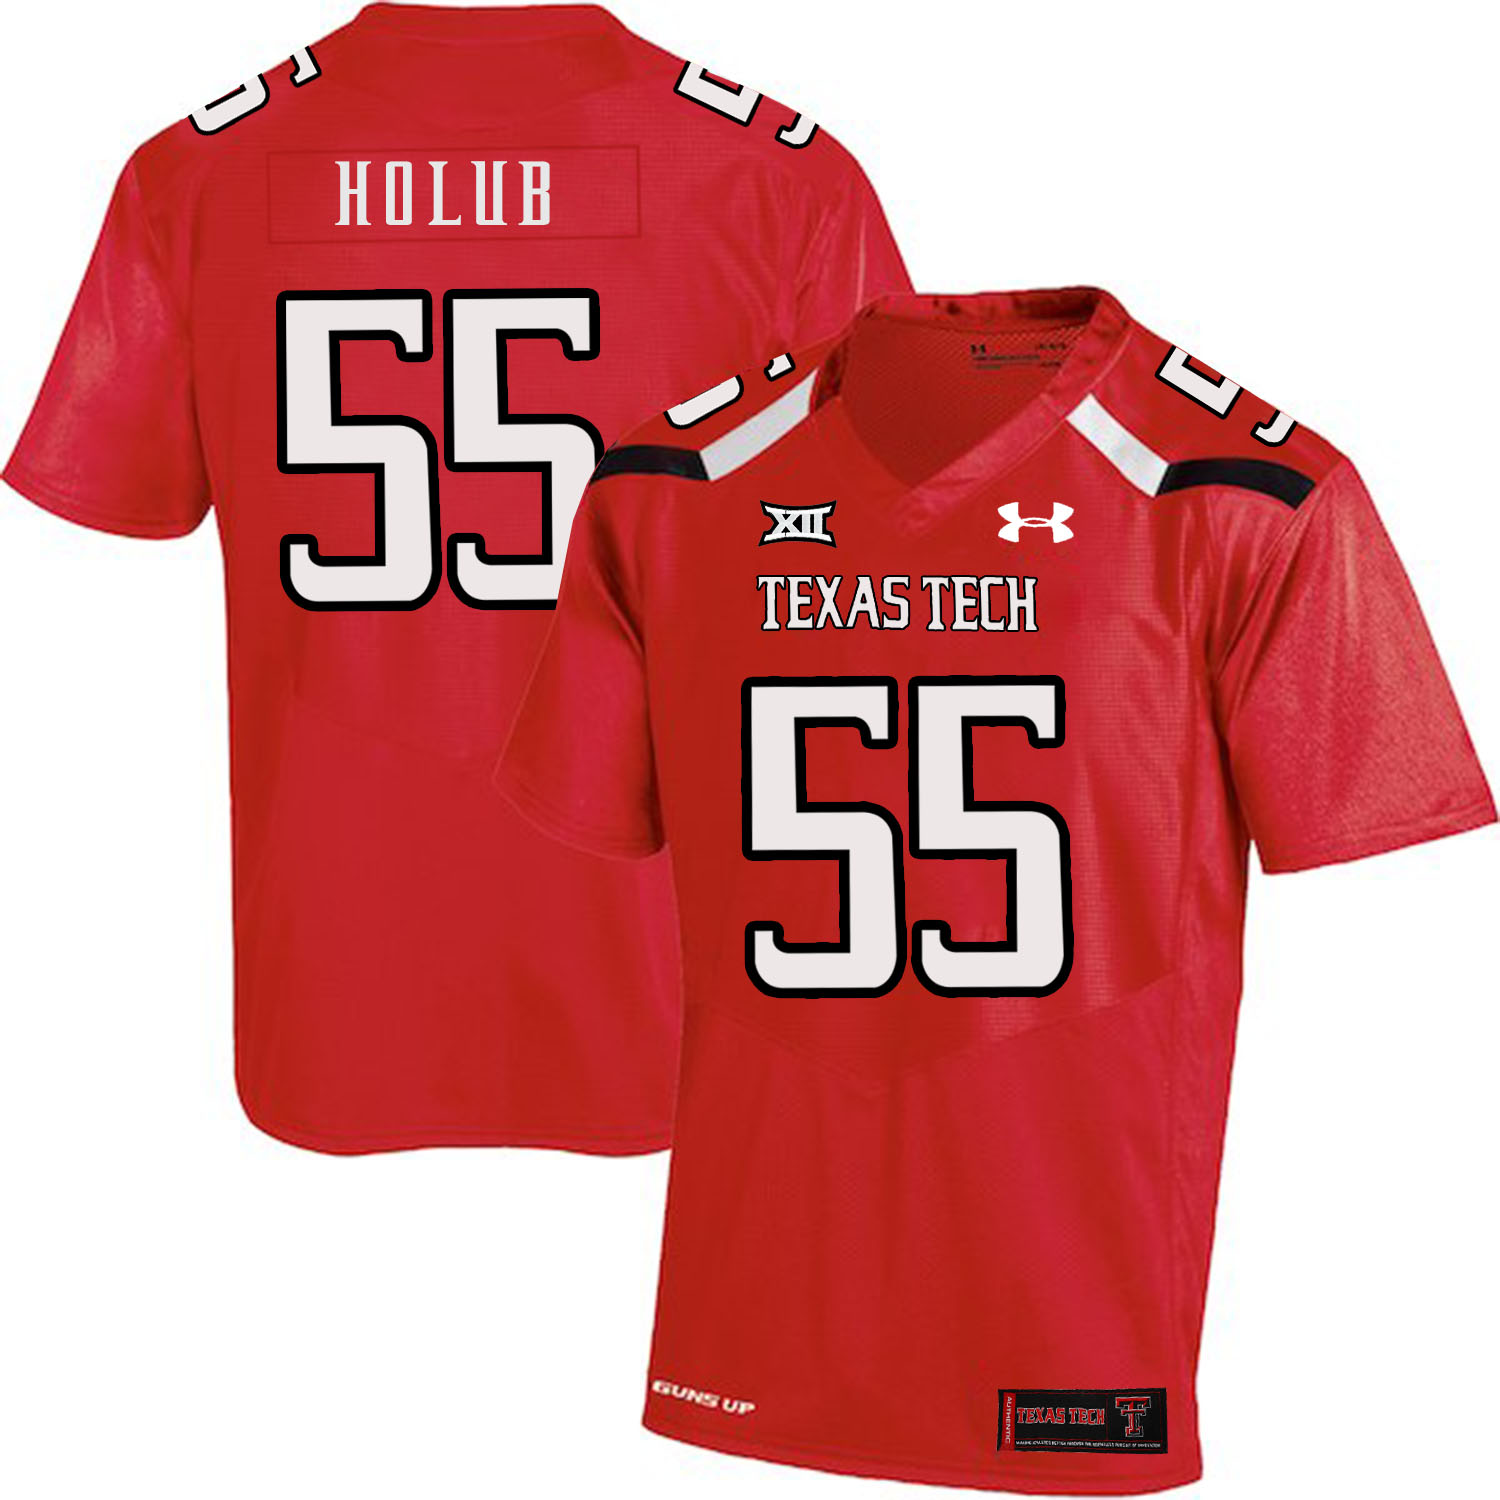 Texas Tech Red Raiders 55 E.J. Holub Red College Football Jersey